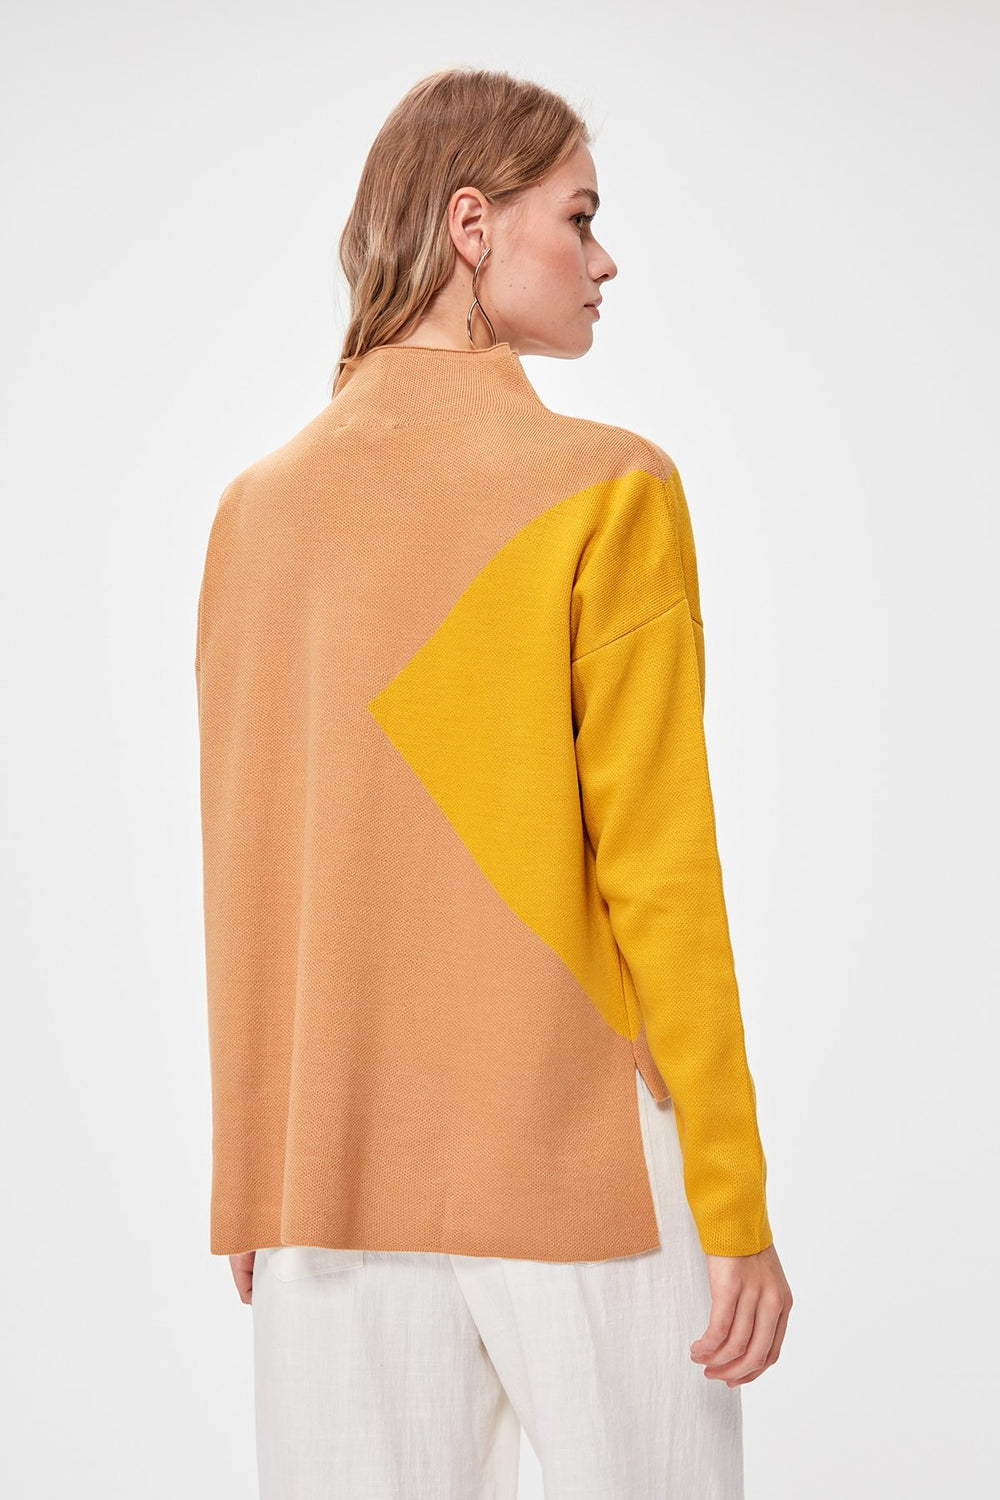 Miss Zut Miss Zut With Color Block Pullover Sweater Miss Zut &CO